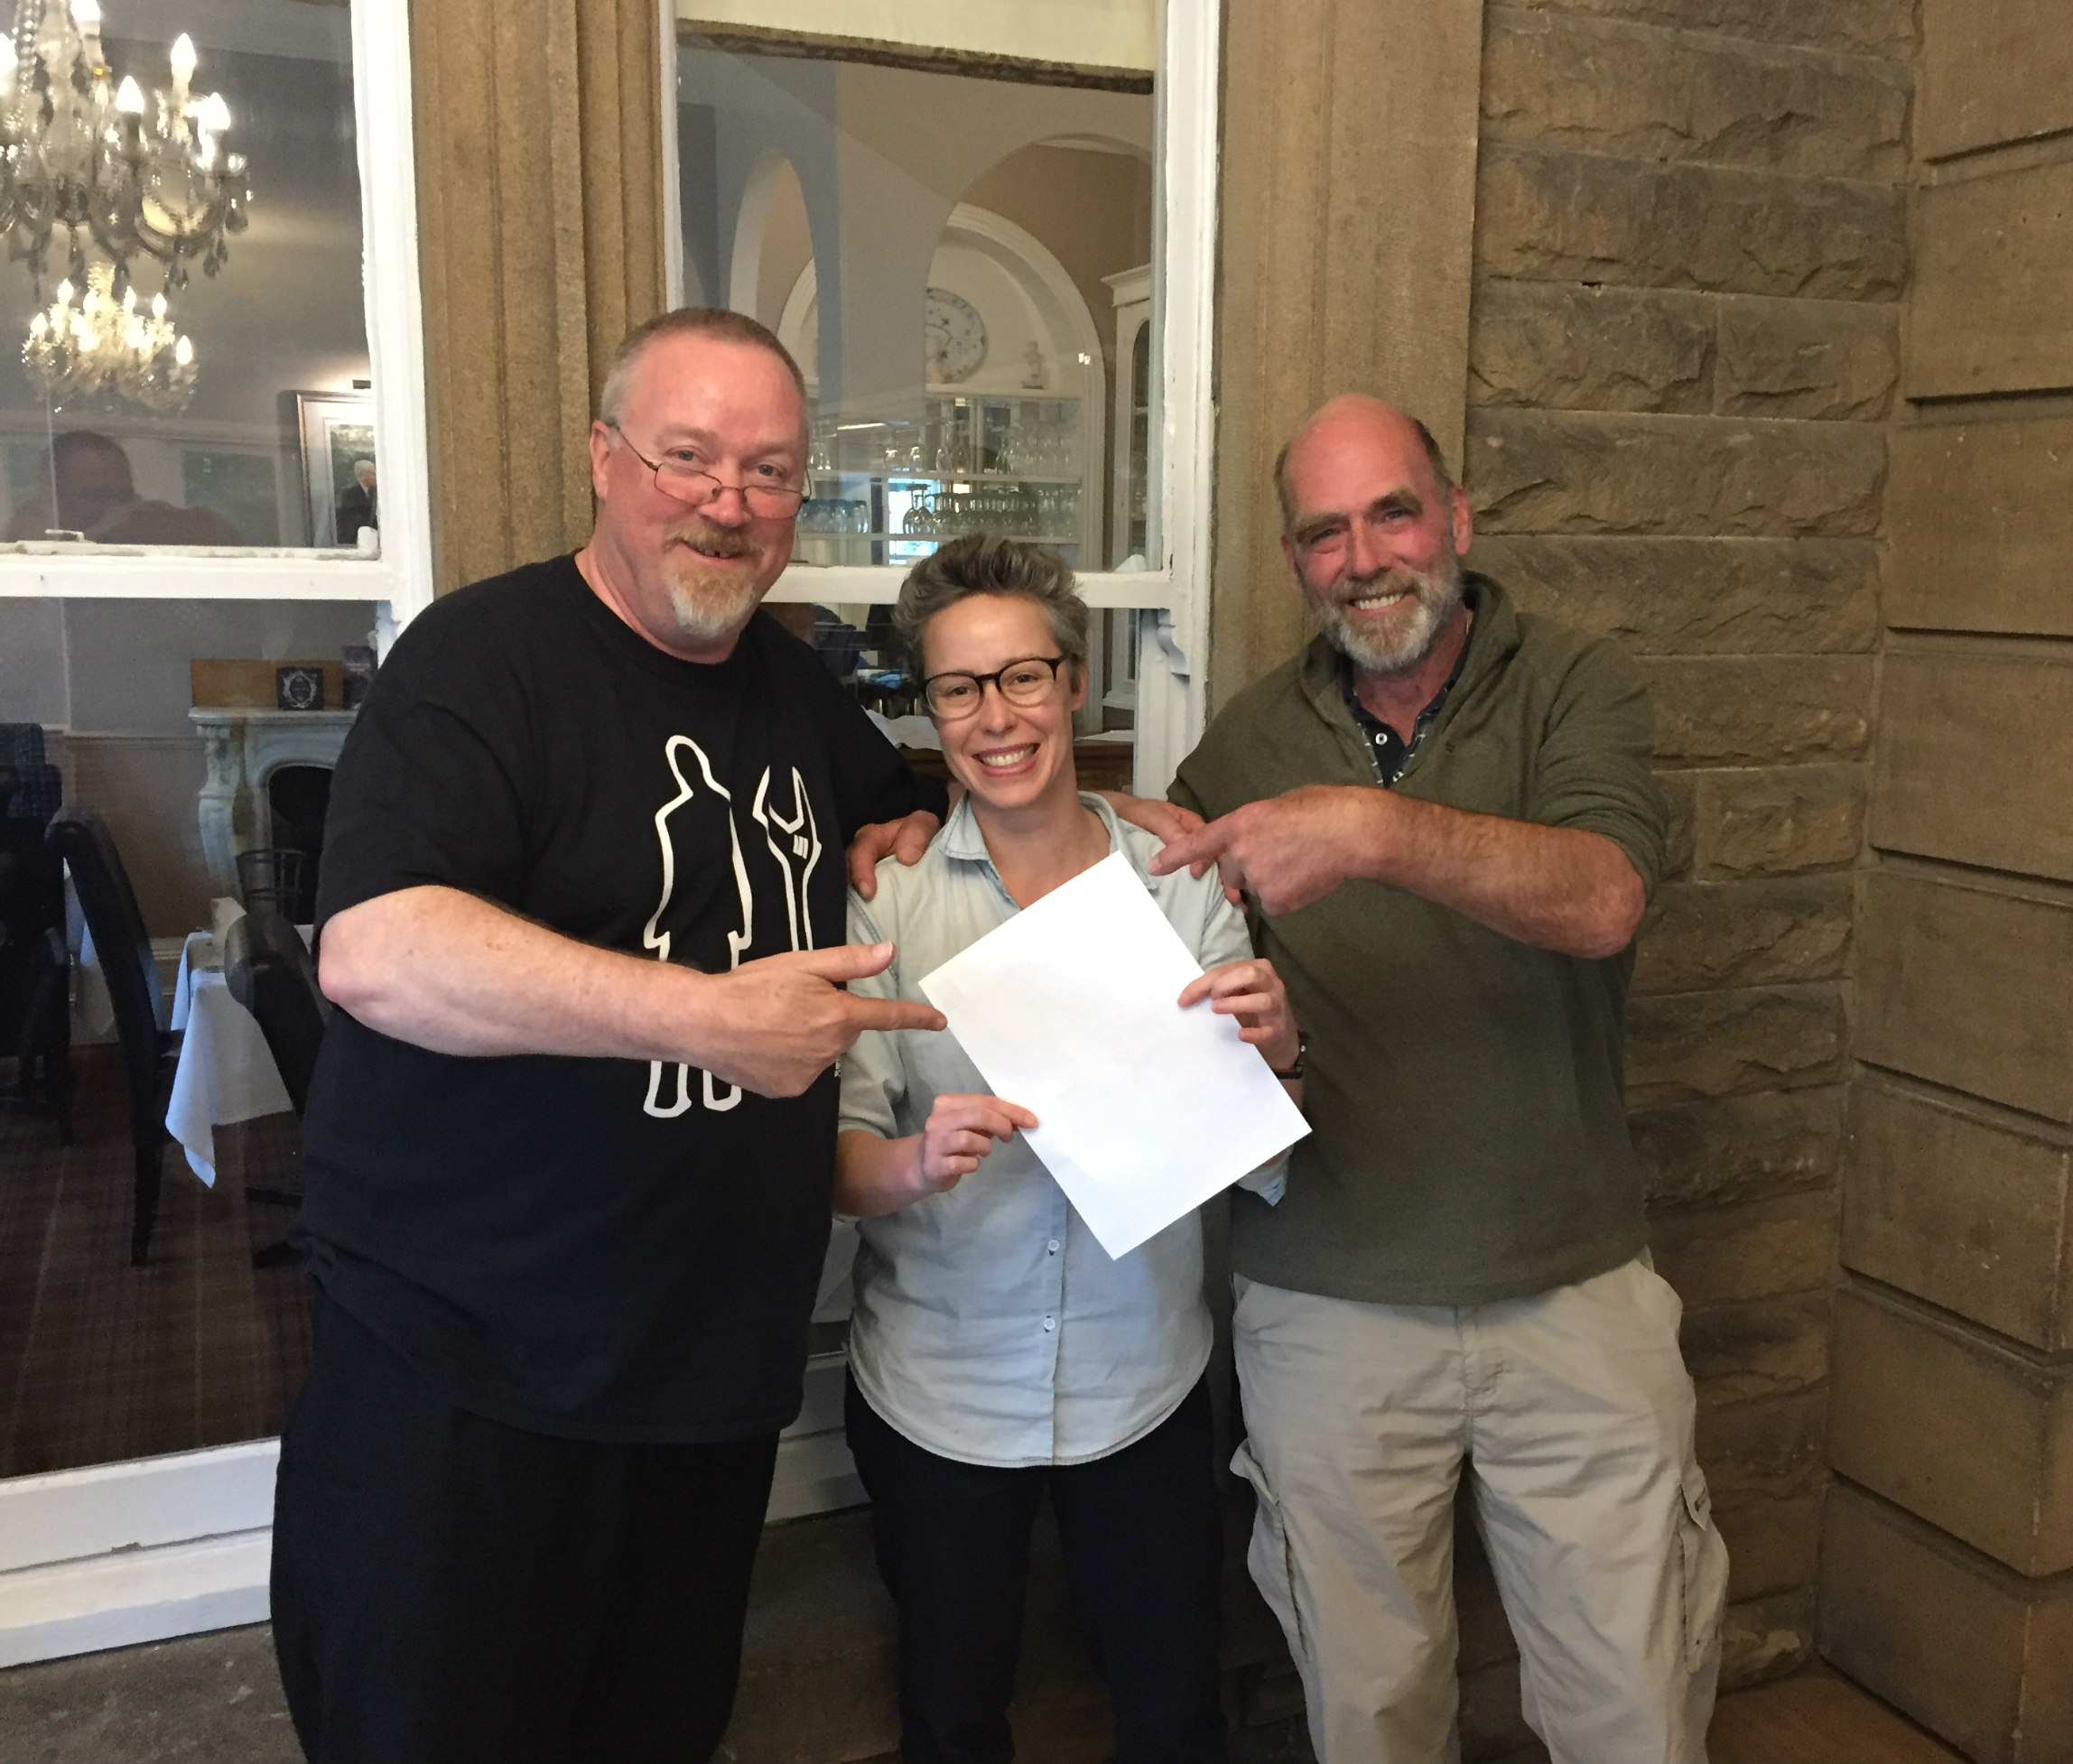 Mark Surtees (left) and Mike Heritage (right) presenting me with my 'certificate'. They didn't have official ones printed so we improvised with a blank piece of paper for the photo ;-)